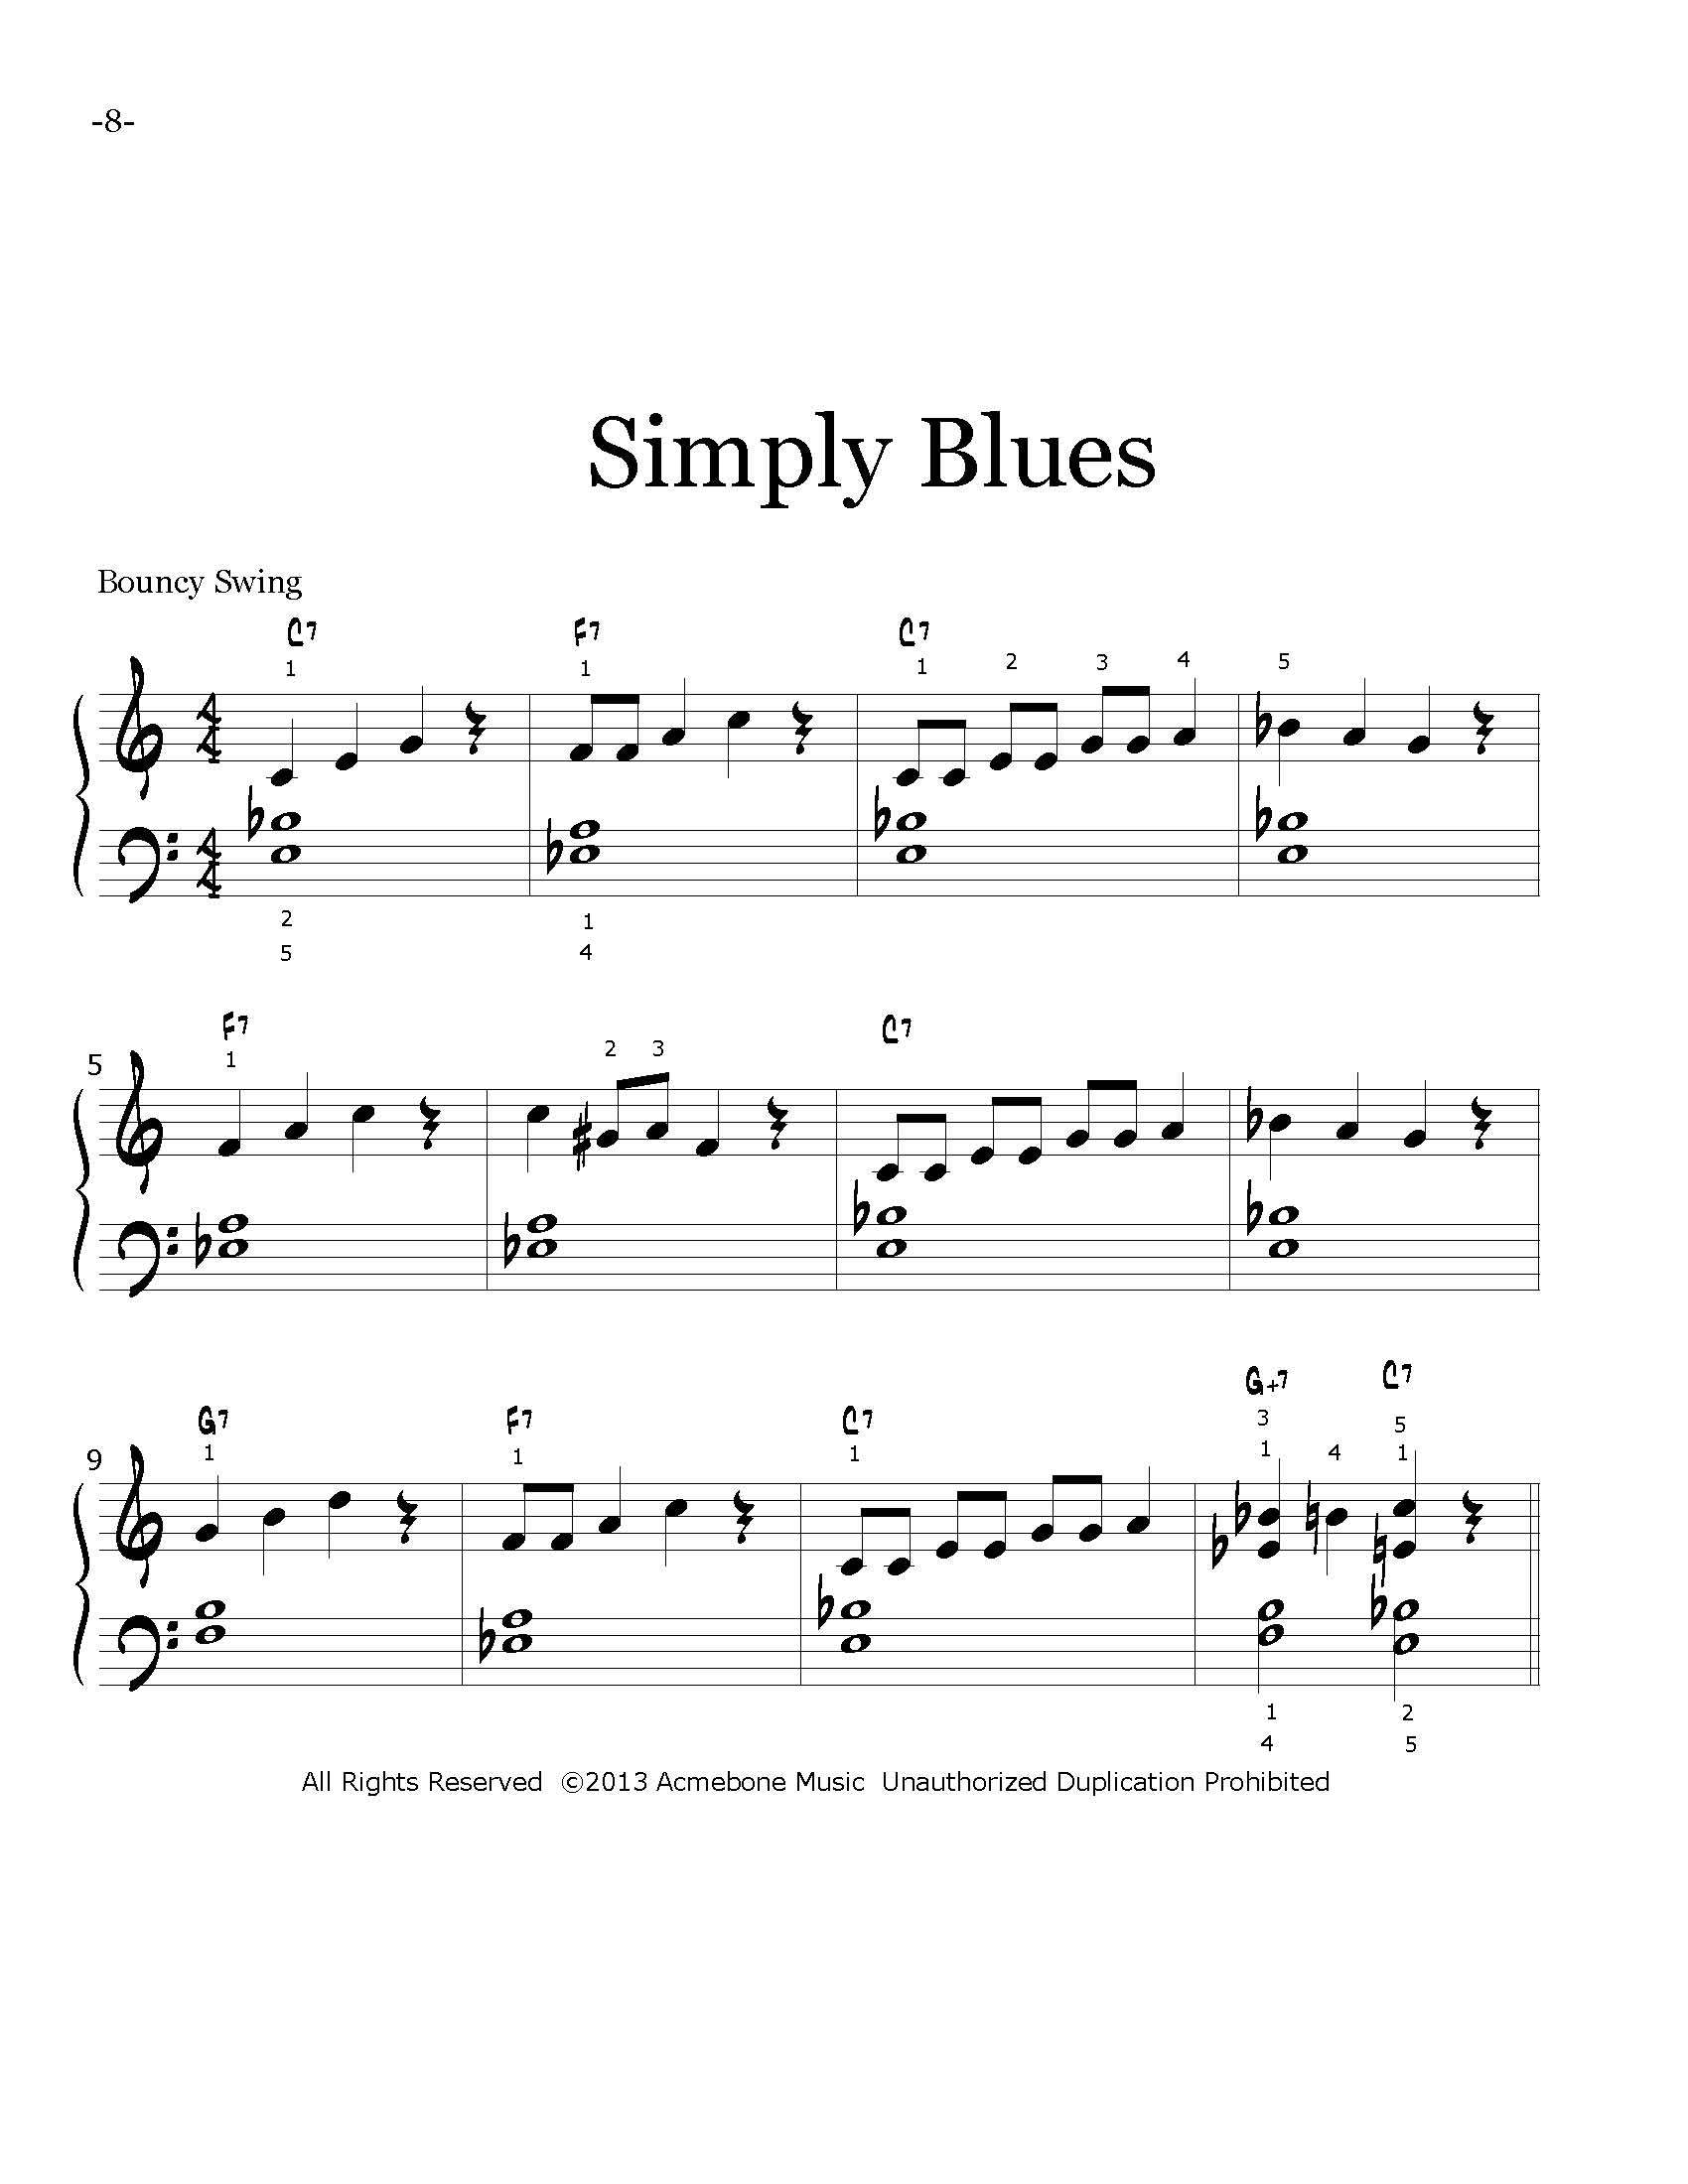 Progressive Jazz Etudes for Piano bk1 for web_Page_09.jpg